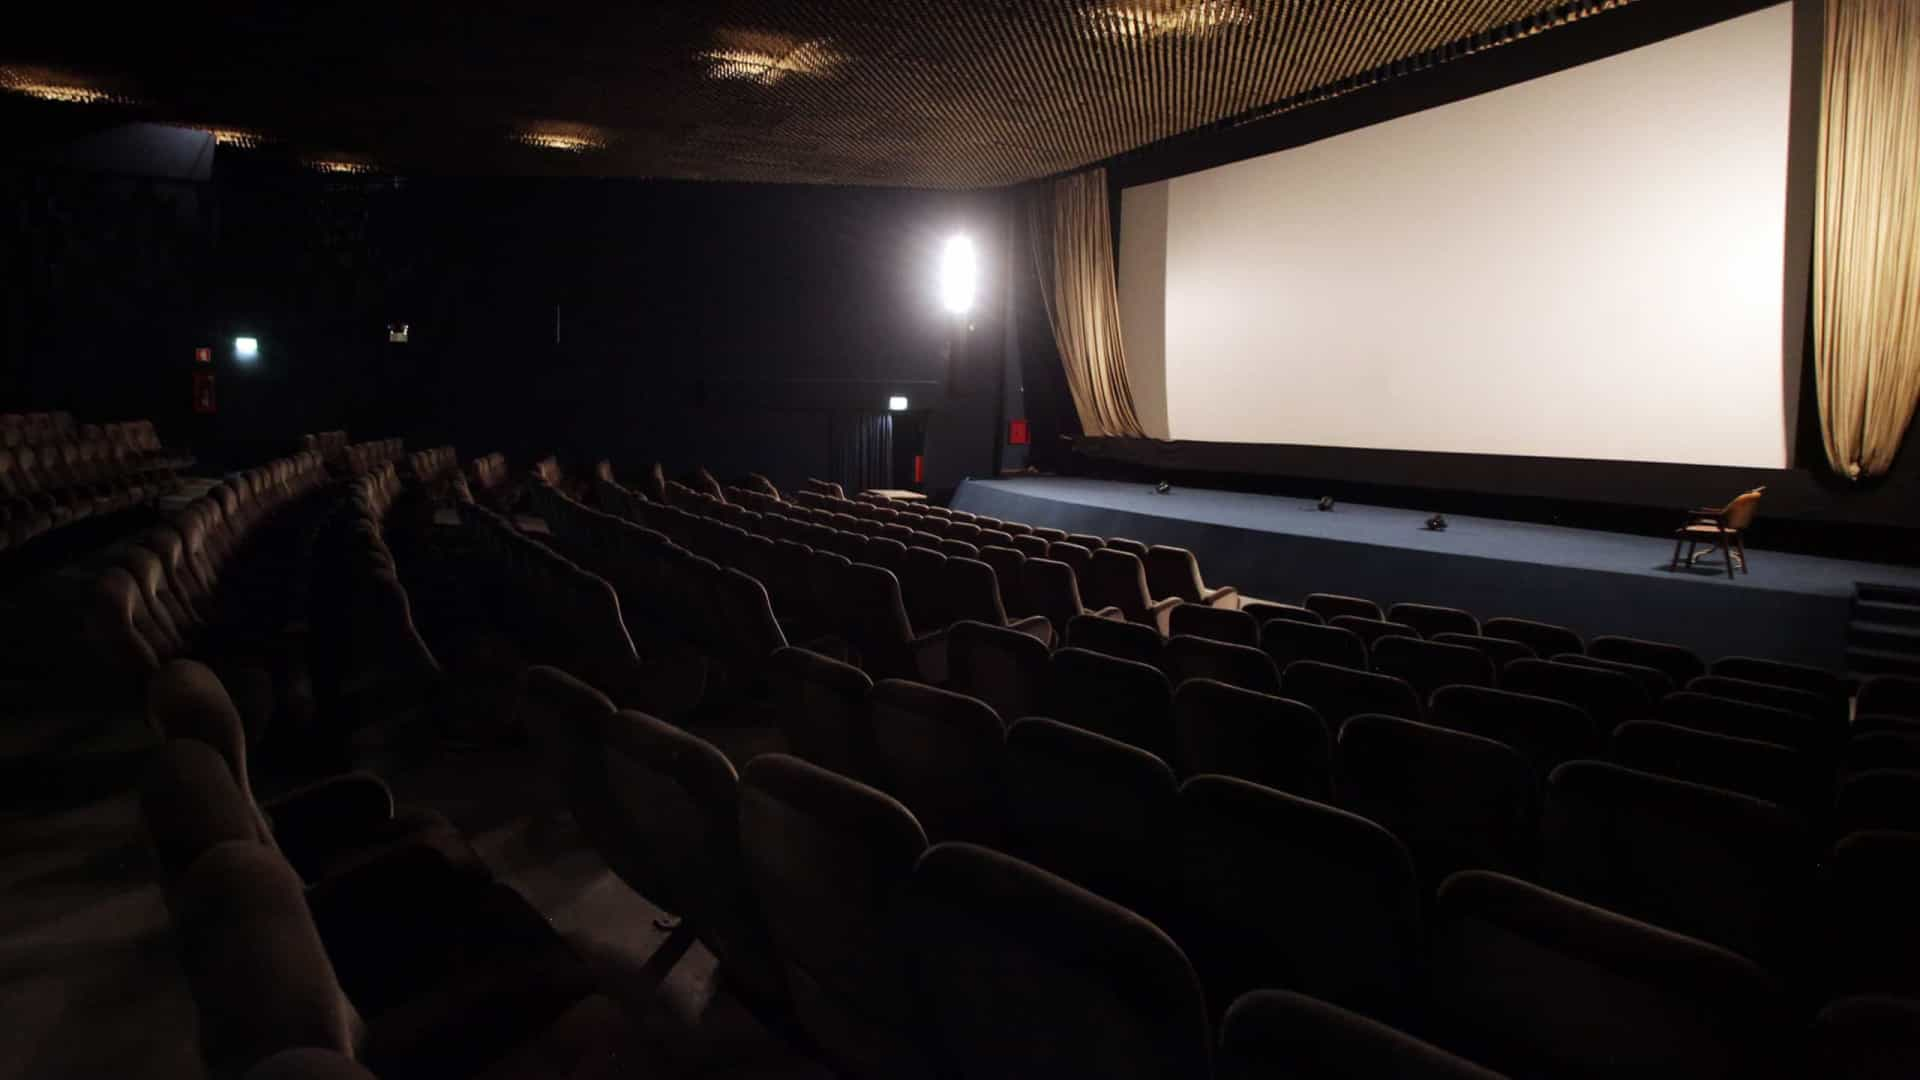 SECA deixa de decidir júris de concursos do cinema e audiovisual